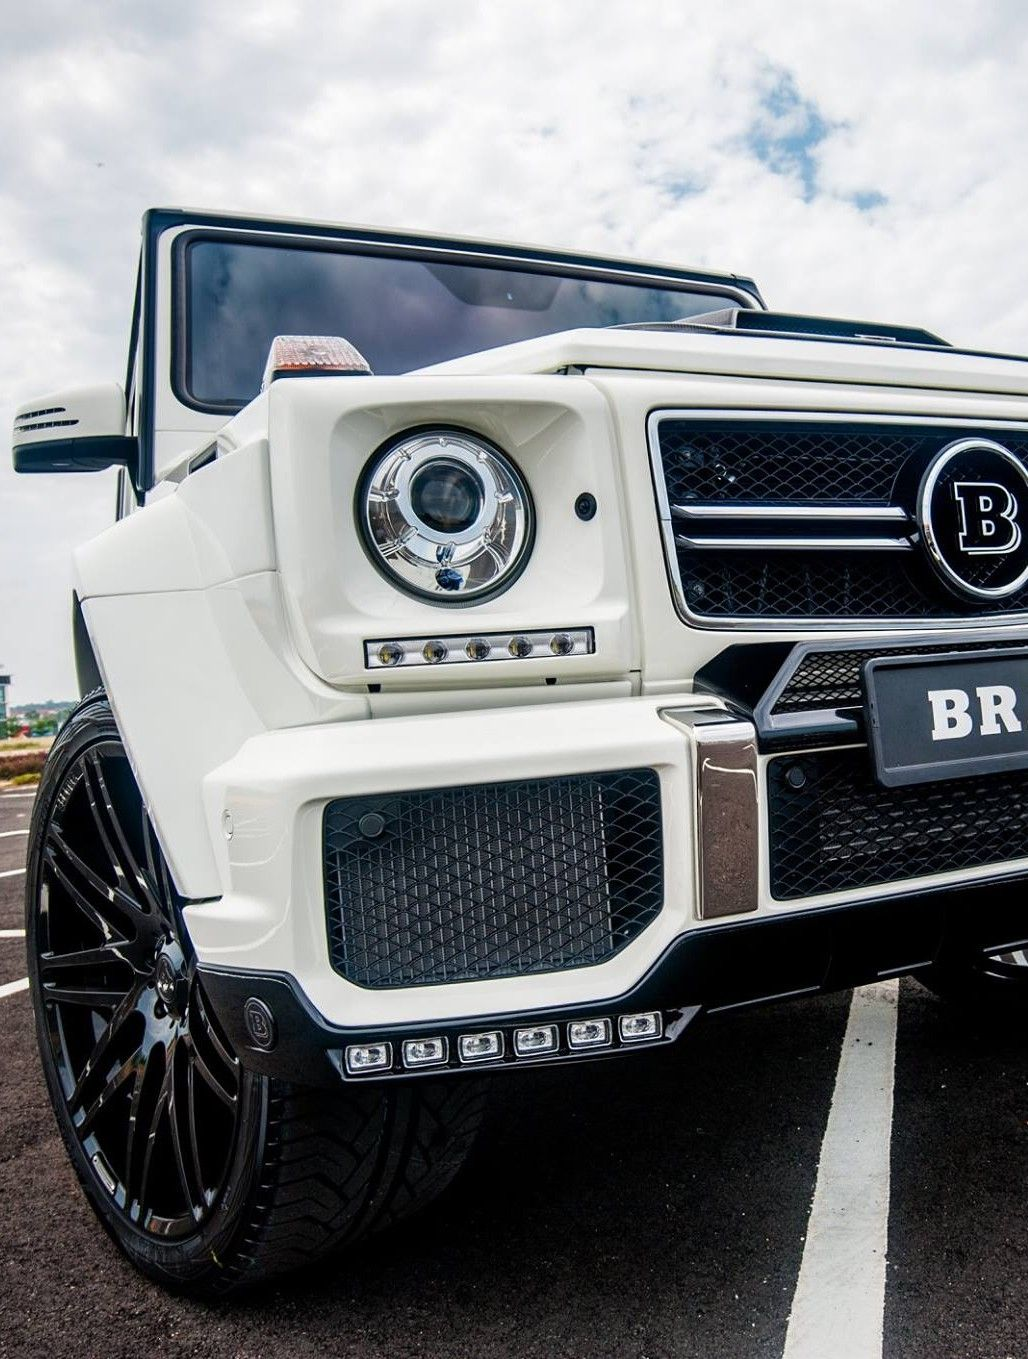 1000 images about mercedes benz g class on pinterest autos g class and mercedes g class - Mercedes G Class 66